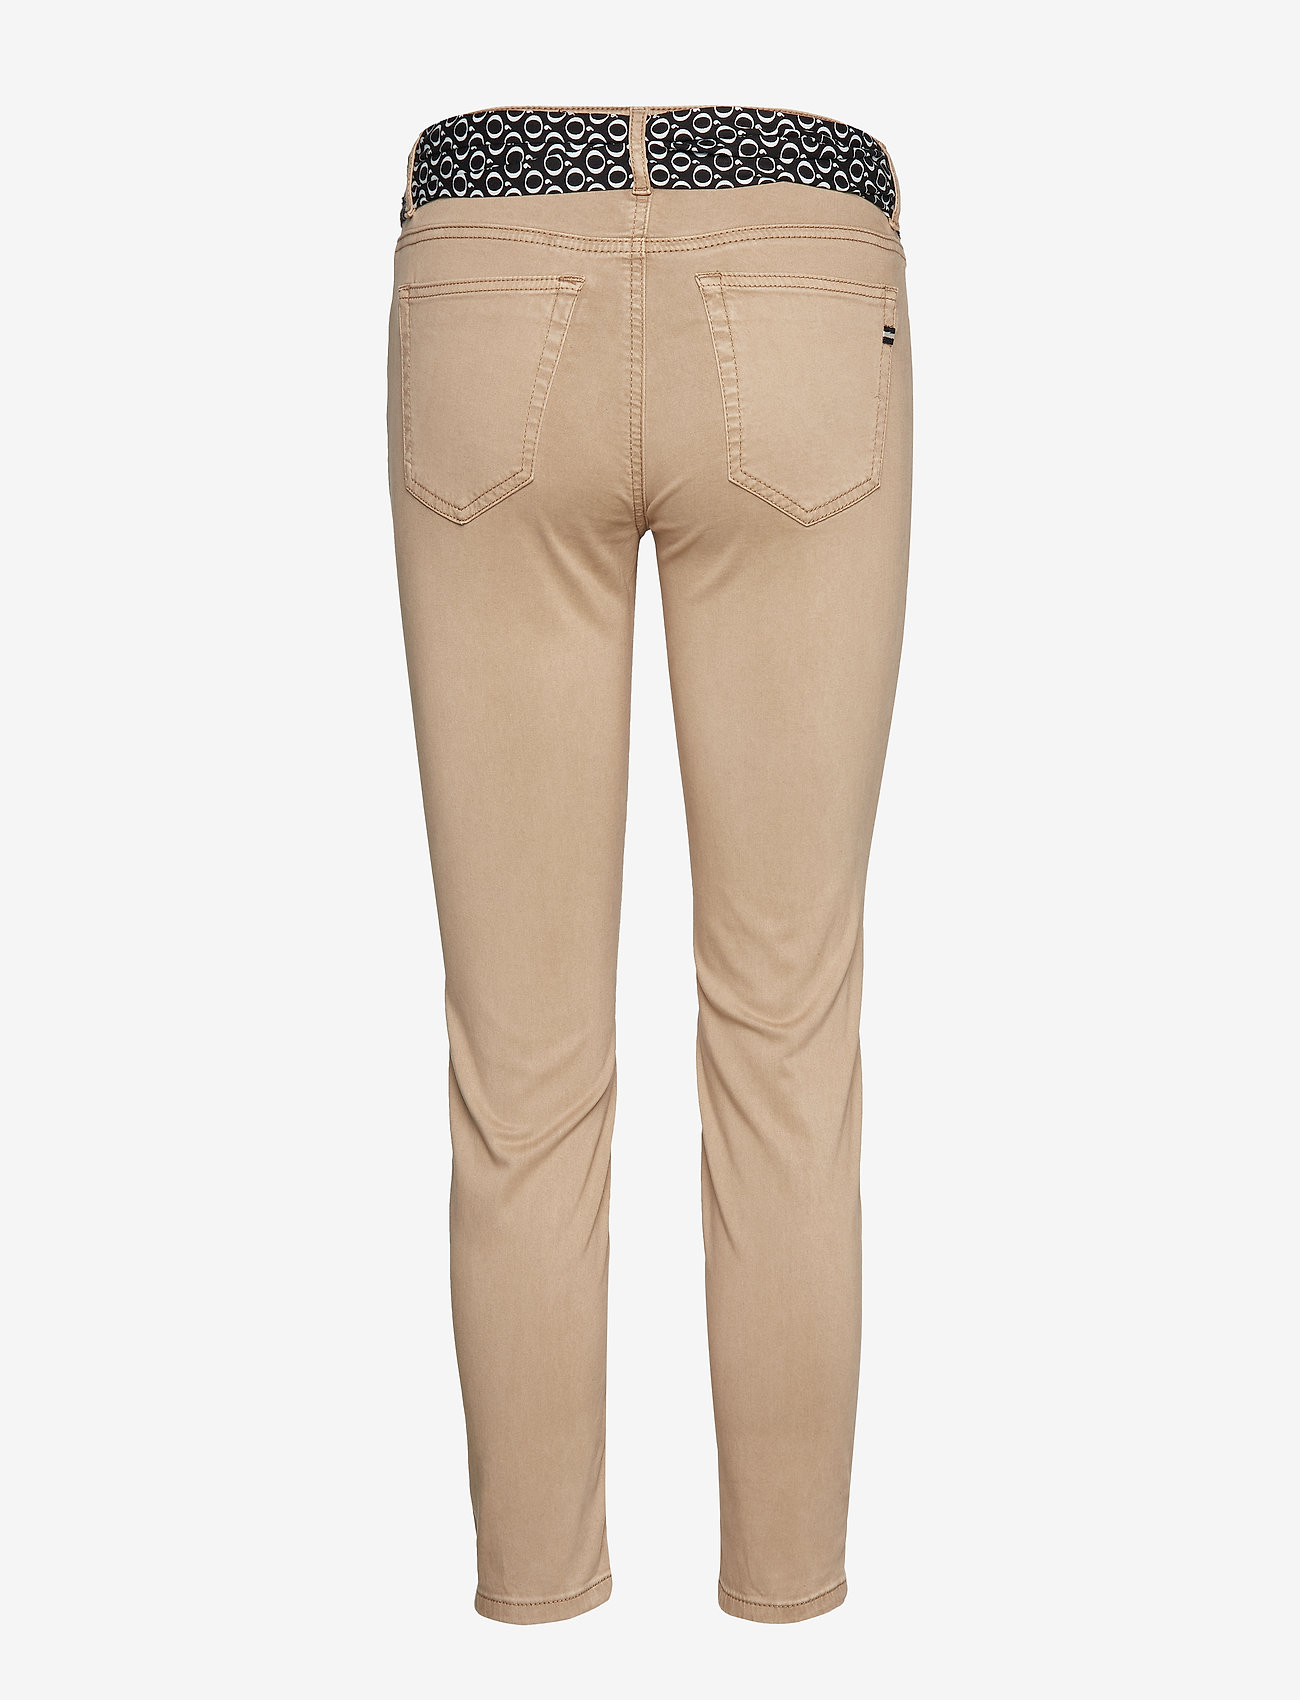 Marc O'Polo - Jeans - slim jeans - norse sand - 1